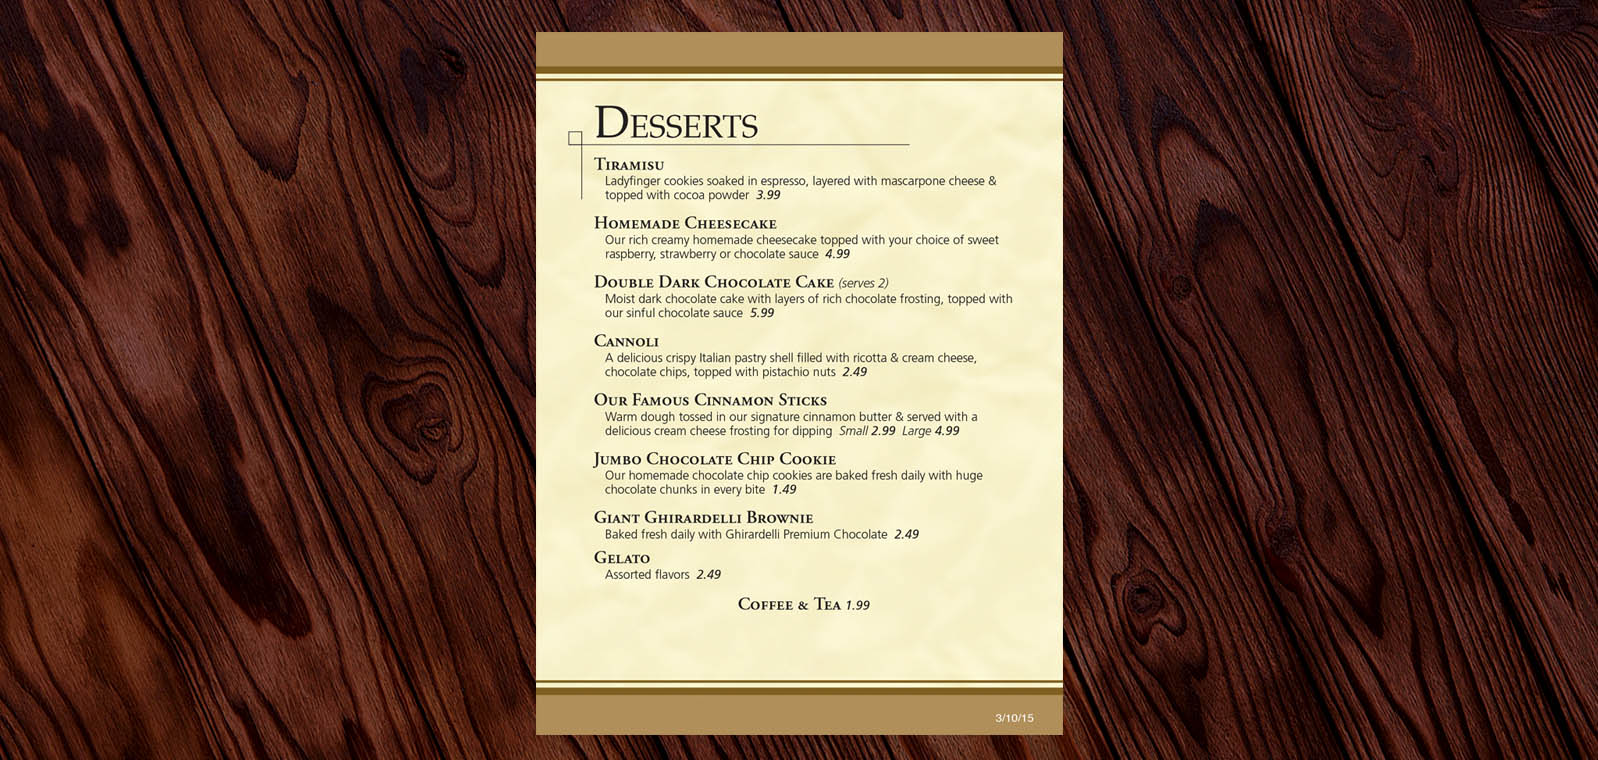 Dessert Menu Graphic Design from Roselle Graphic Designer Controlled Color, Inc.